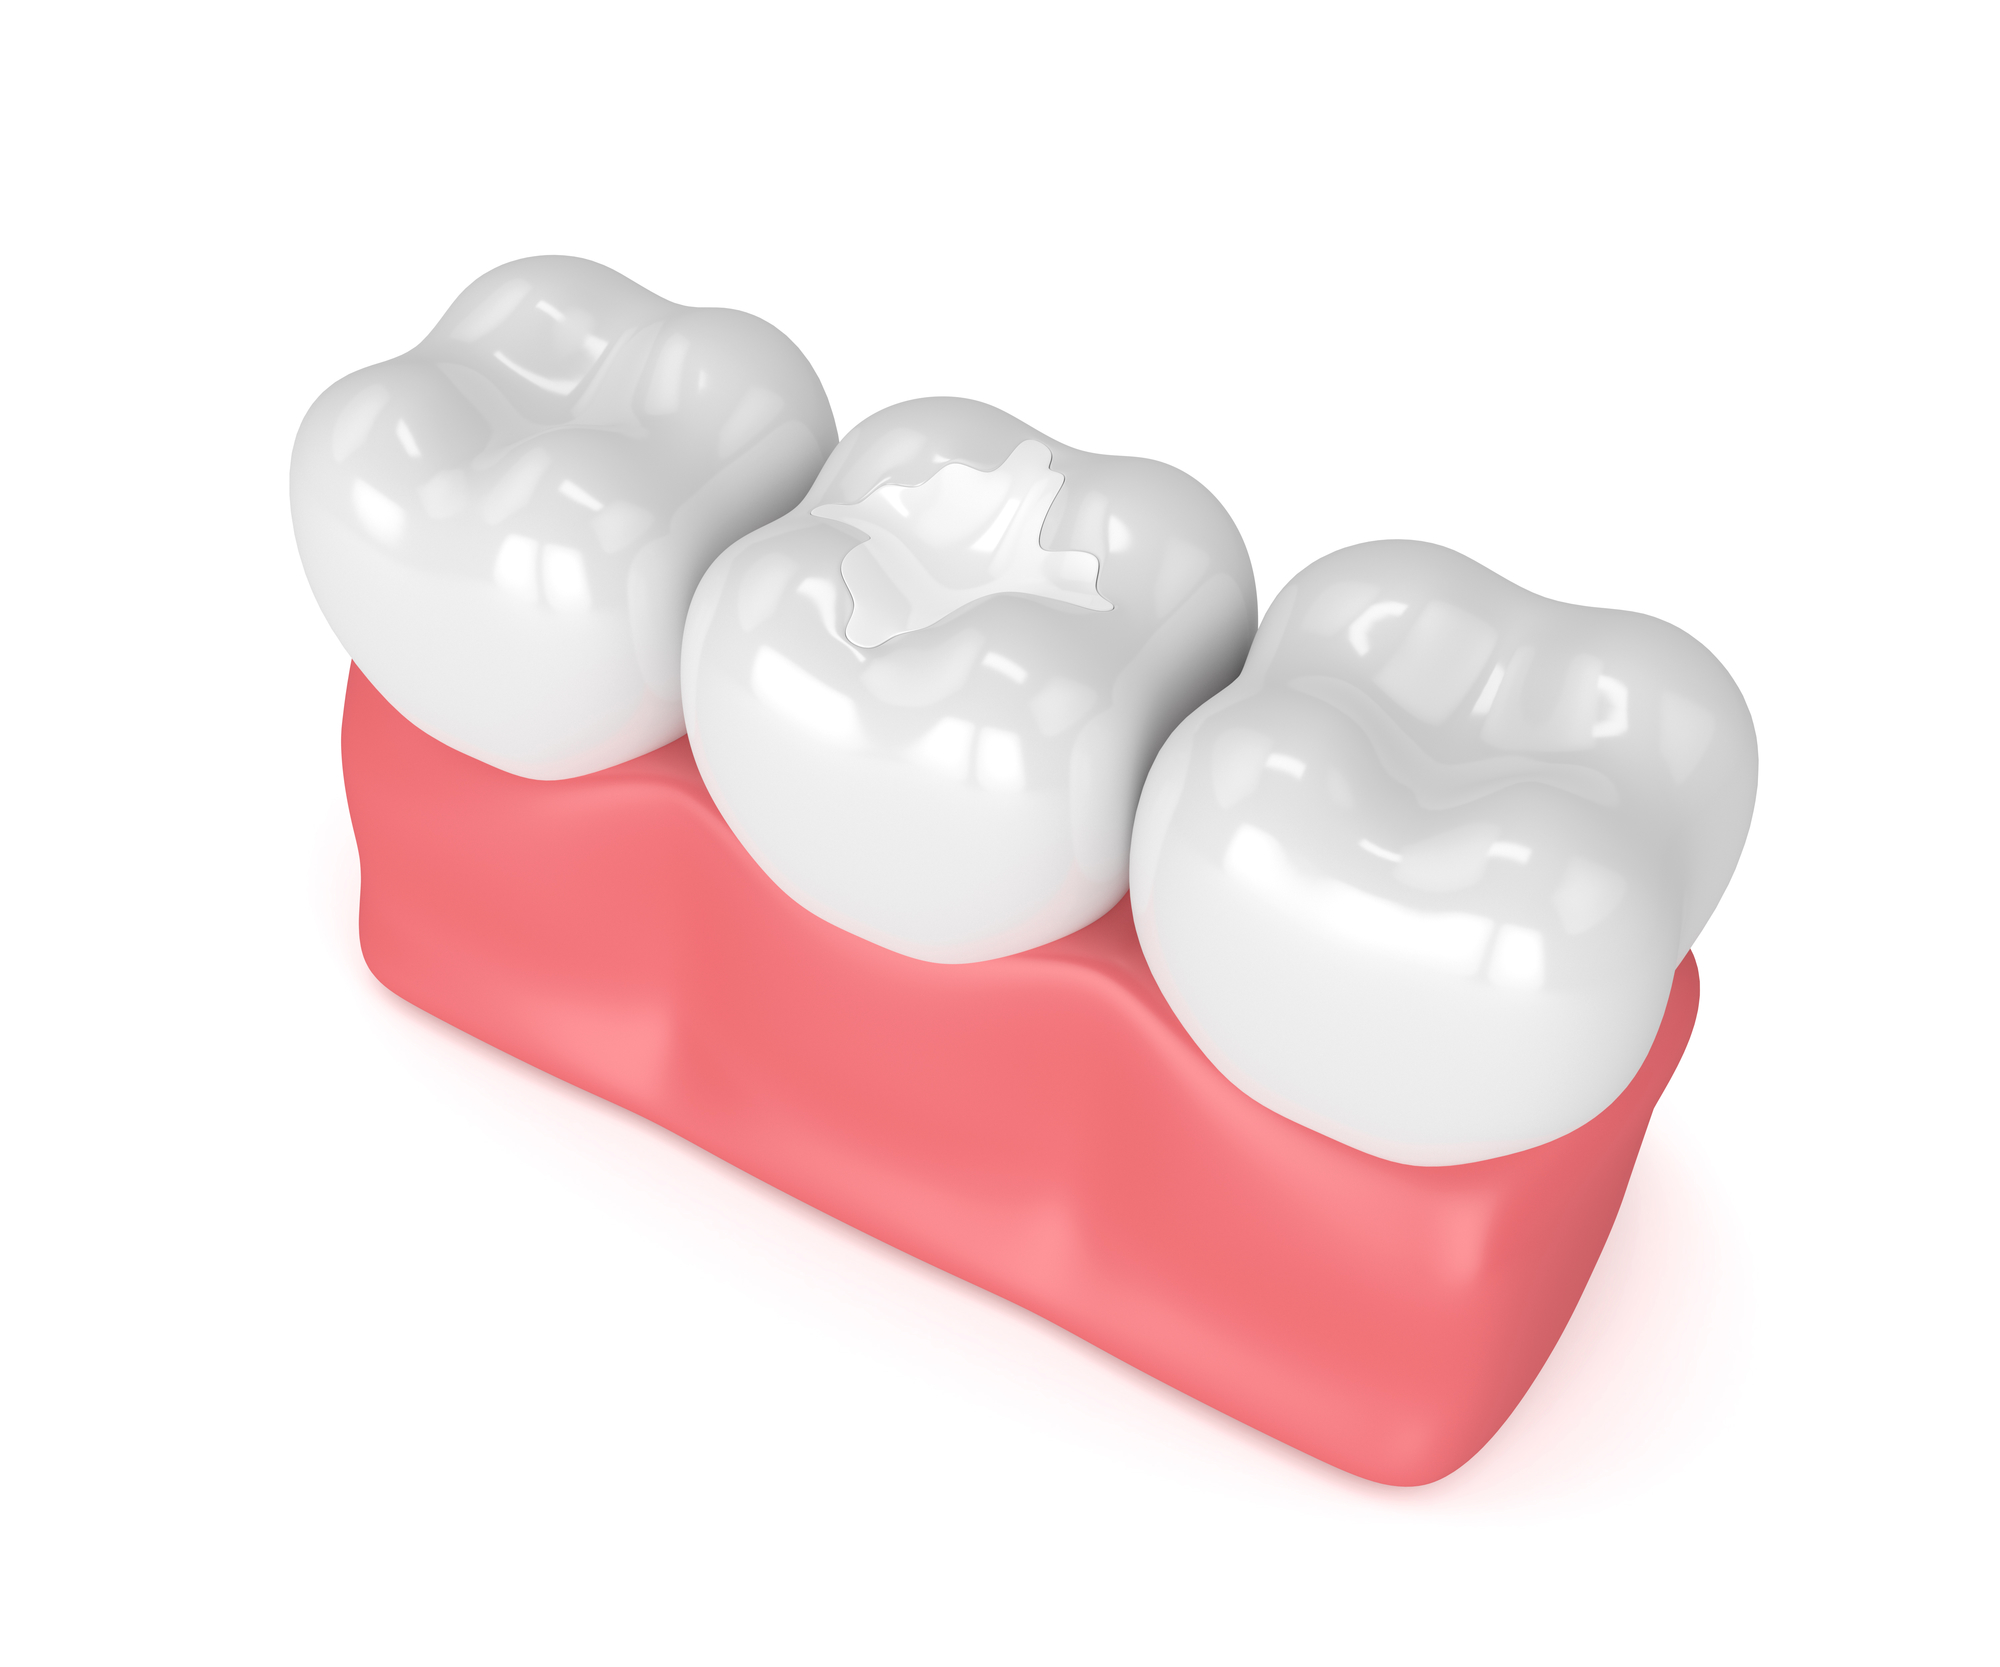 who offers dental crowns odessa fl?